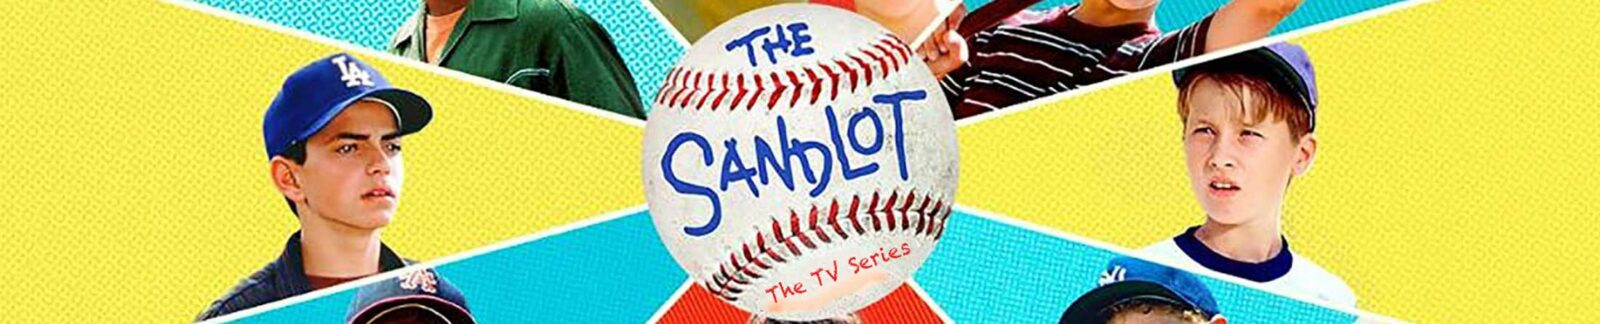 The Sandlot (TV series) - header